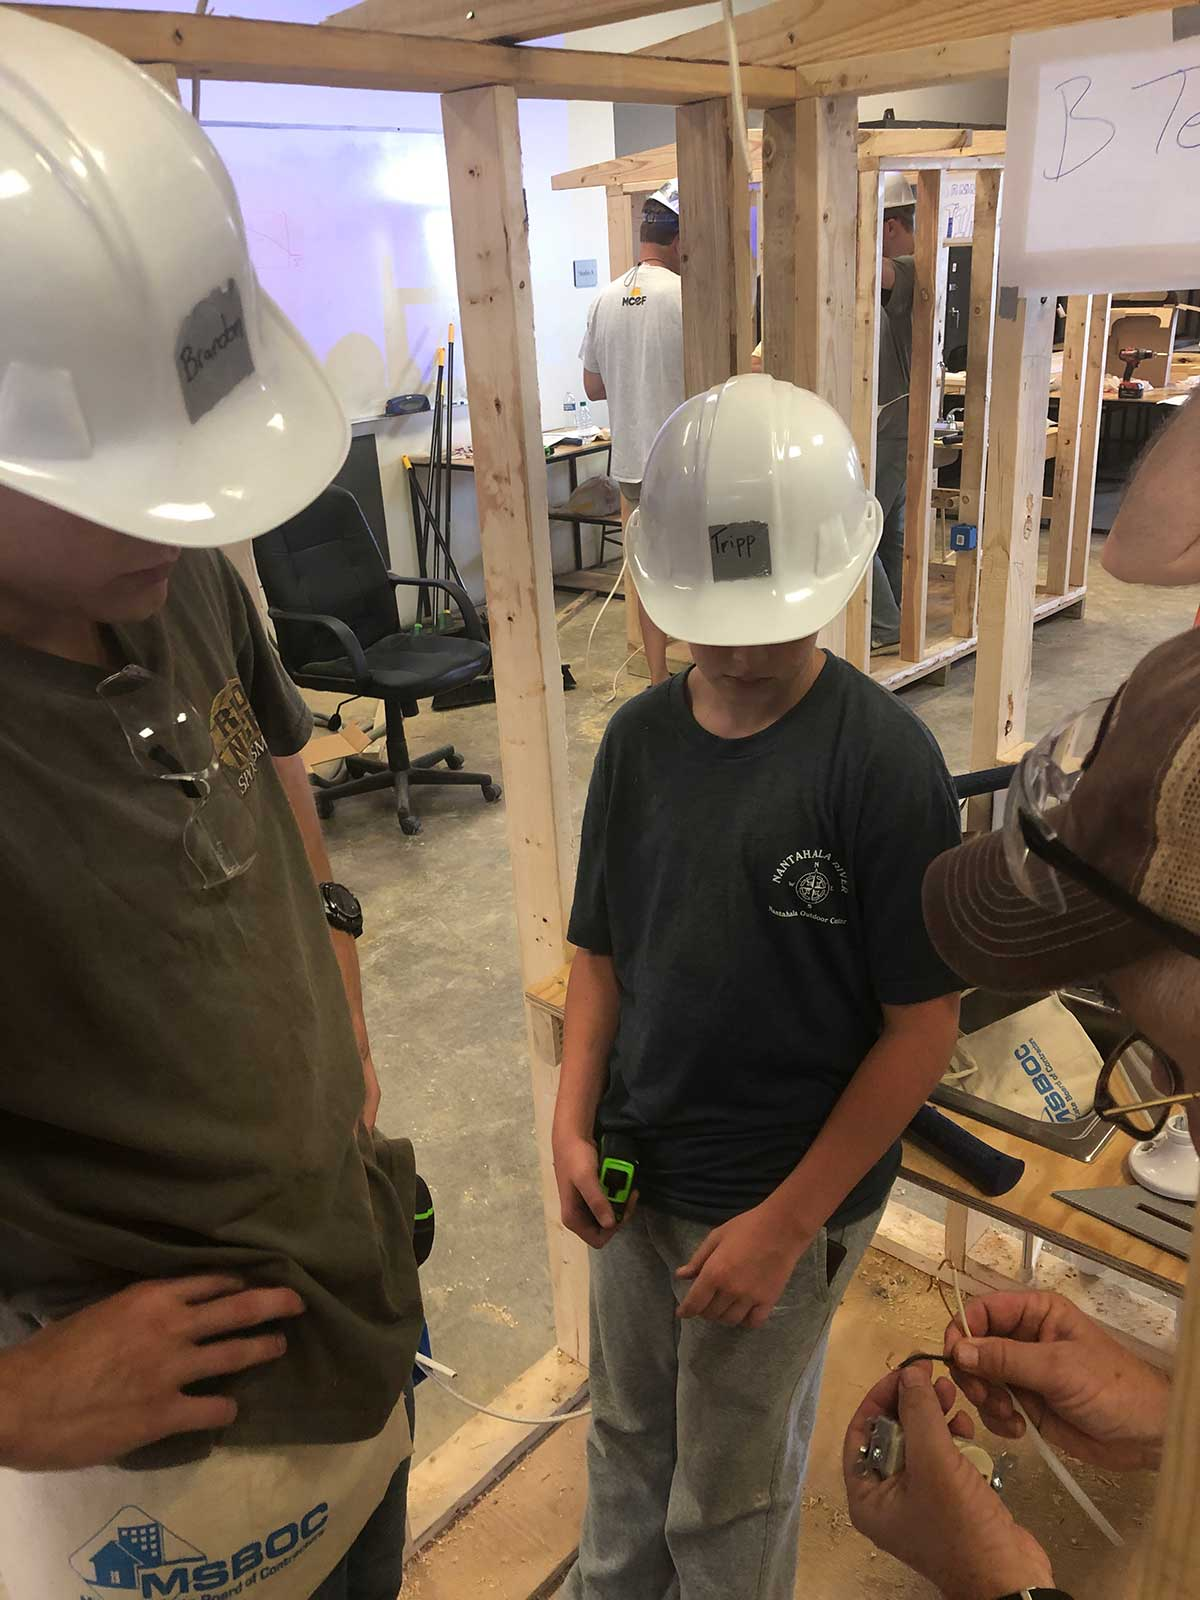 campers look on as construction professional works with wiring